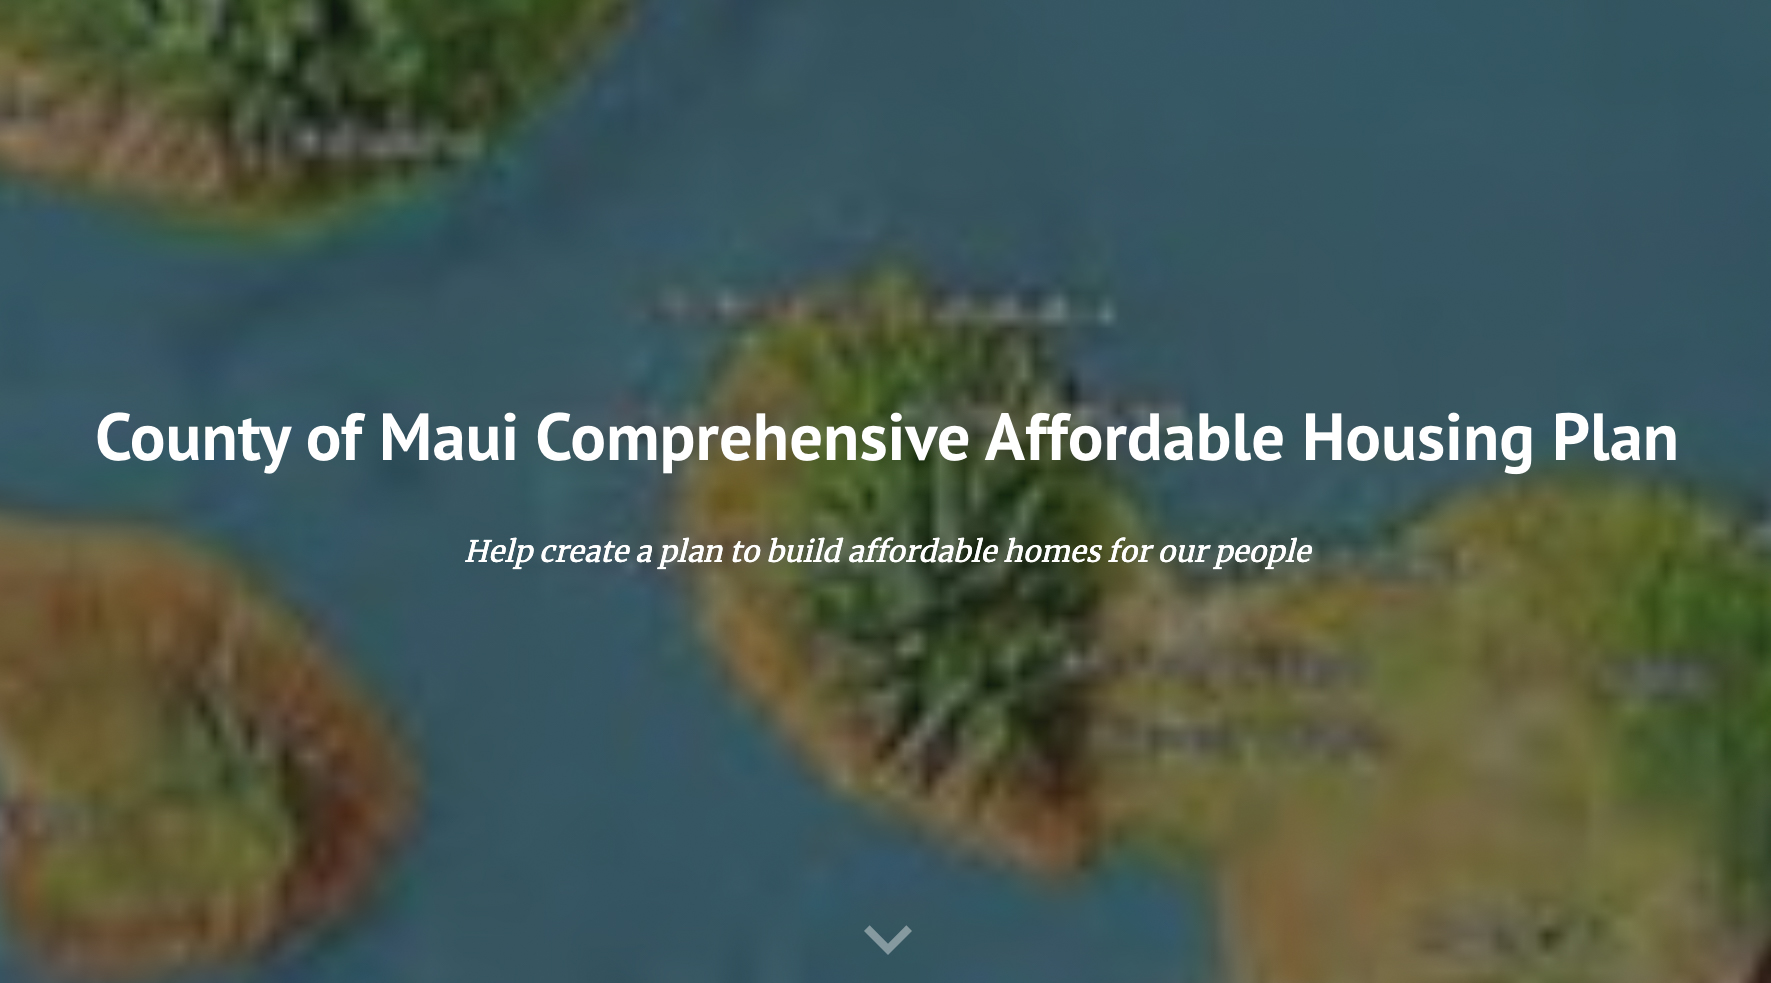 Public Meetings Scheduled for Maui Housing Plan To Build 5,000 Affordable Family Homes